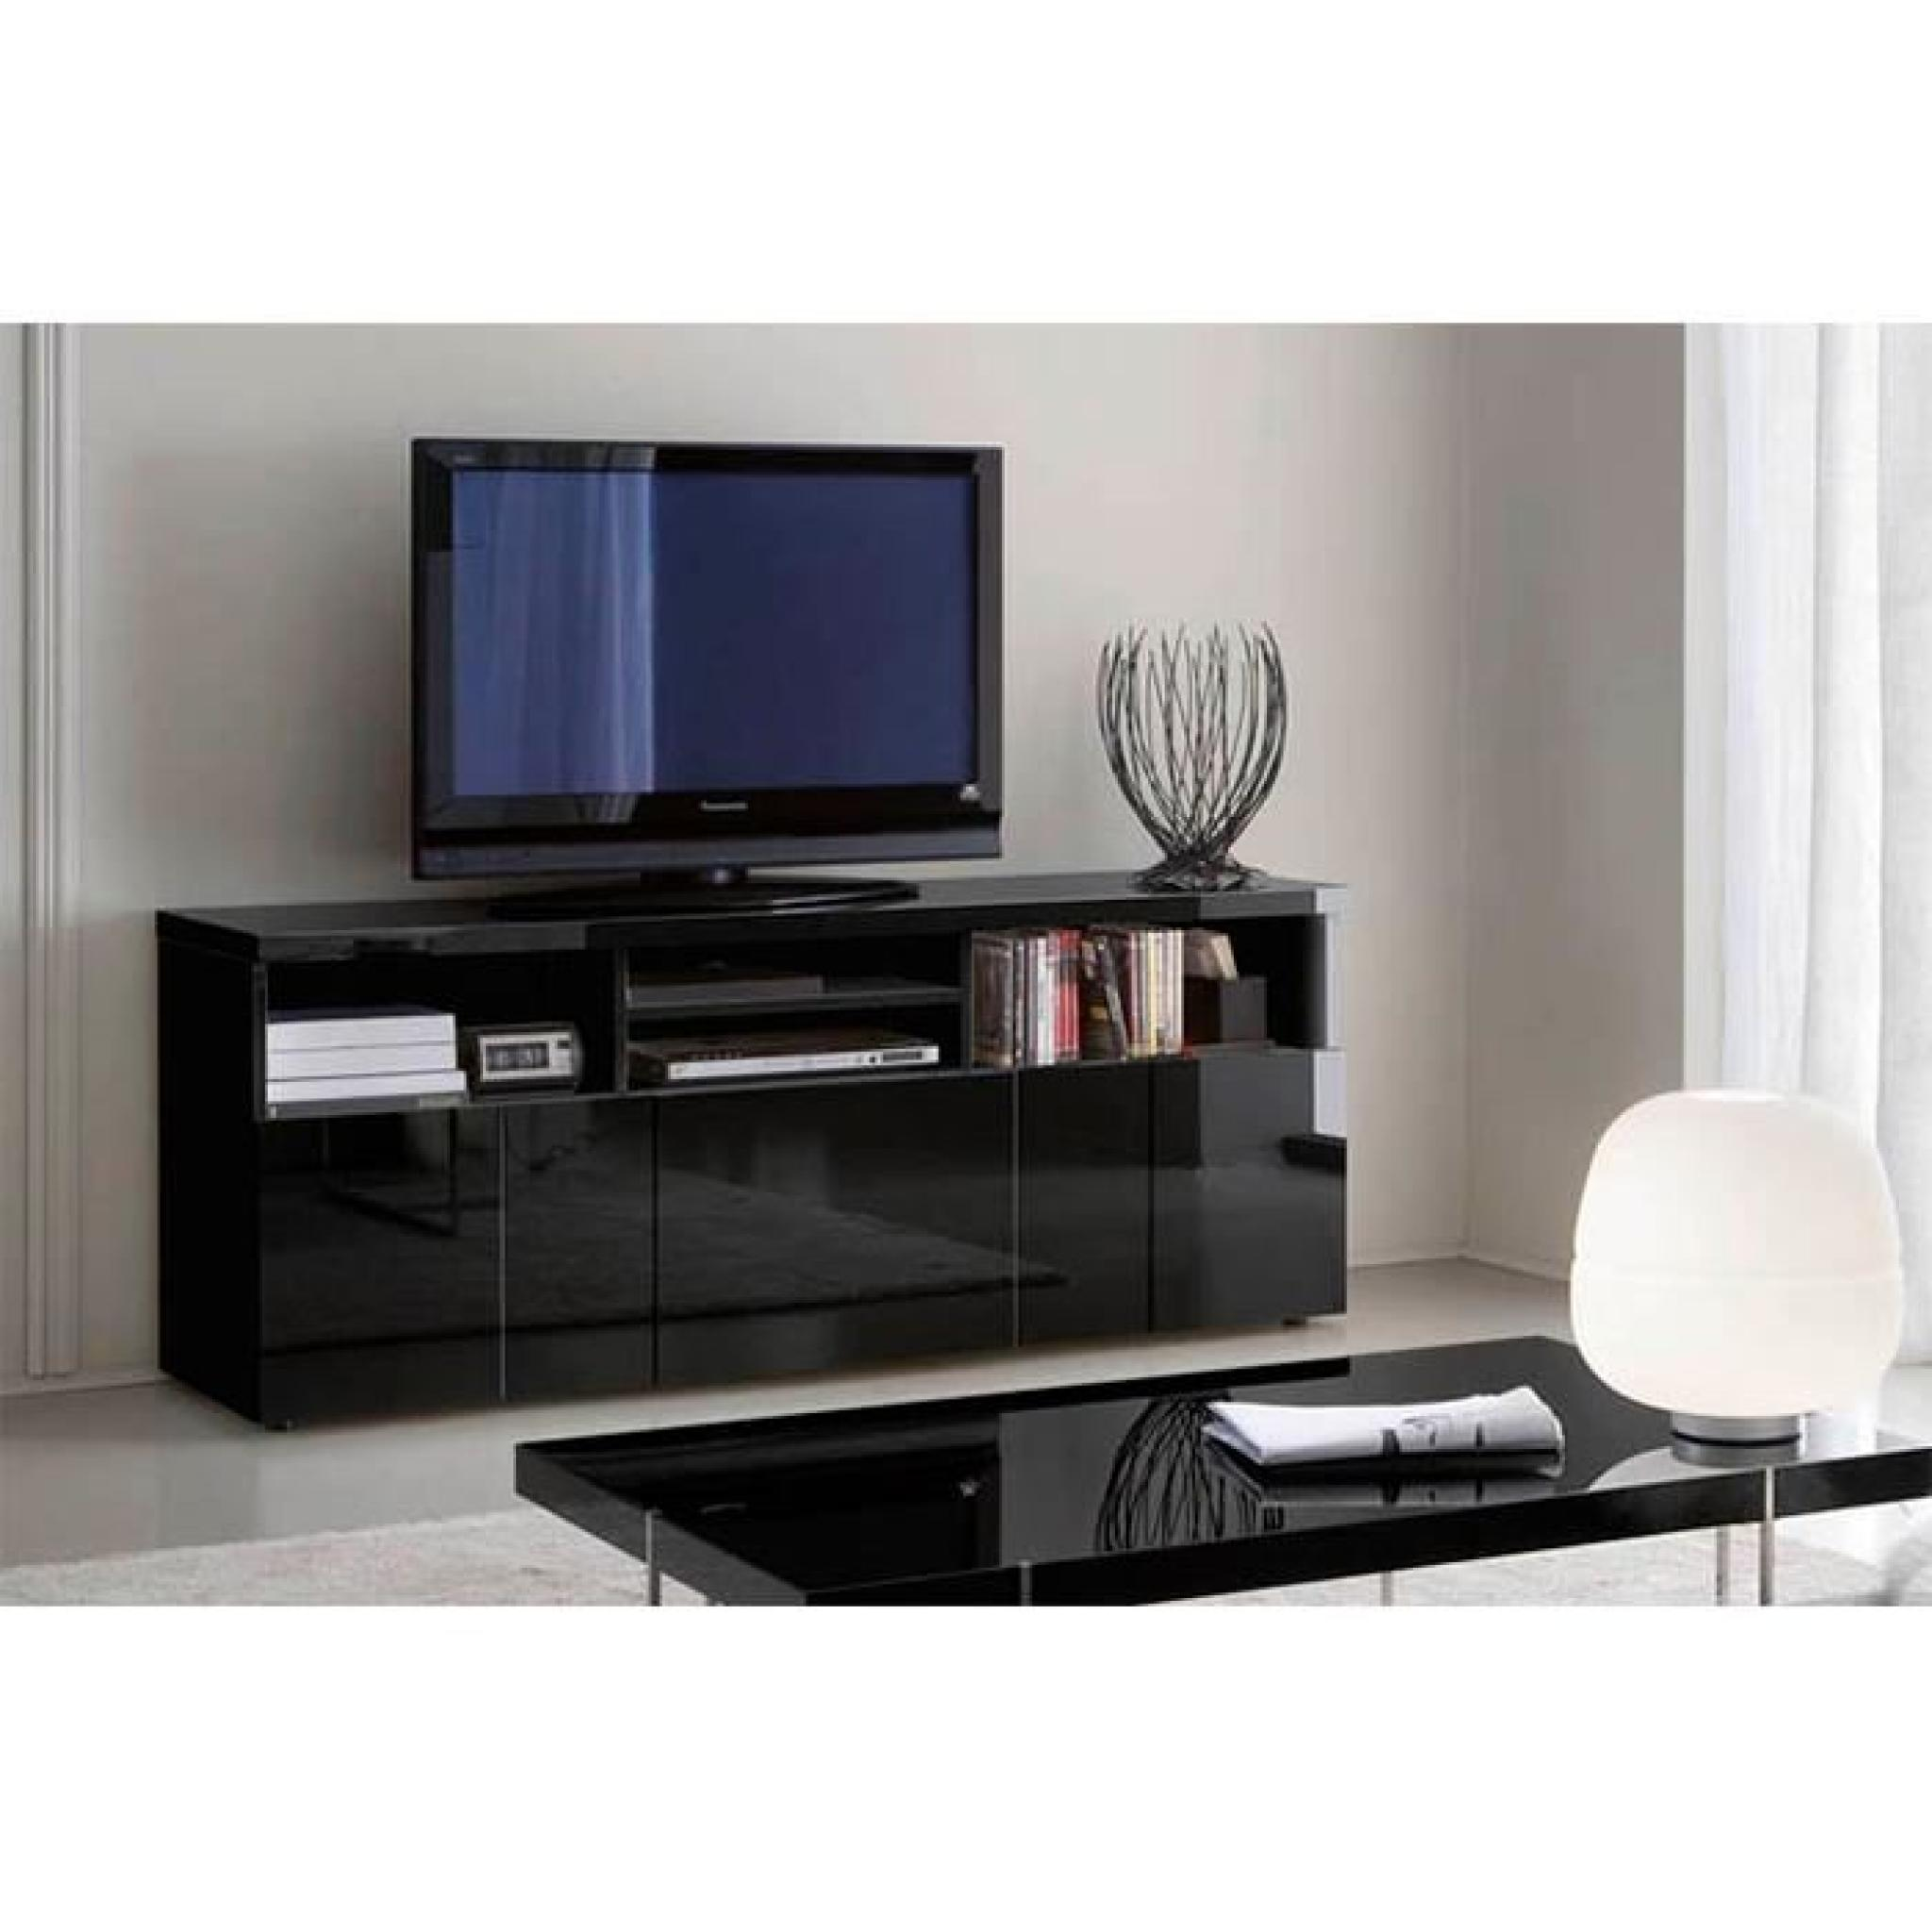 buffet meuble tv glossy noir 3 portes 4 niches achat vente buffet pas cher couleur et. Black Bedroom Furniture Sets. Home Design Ideas